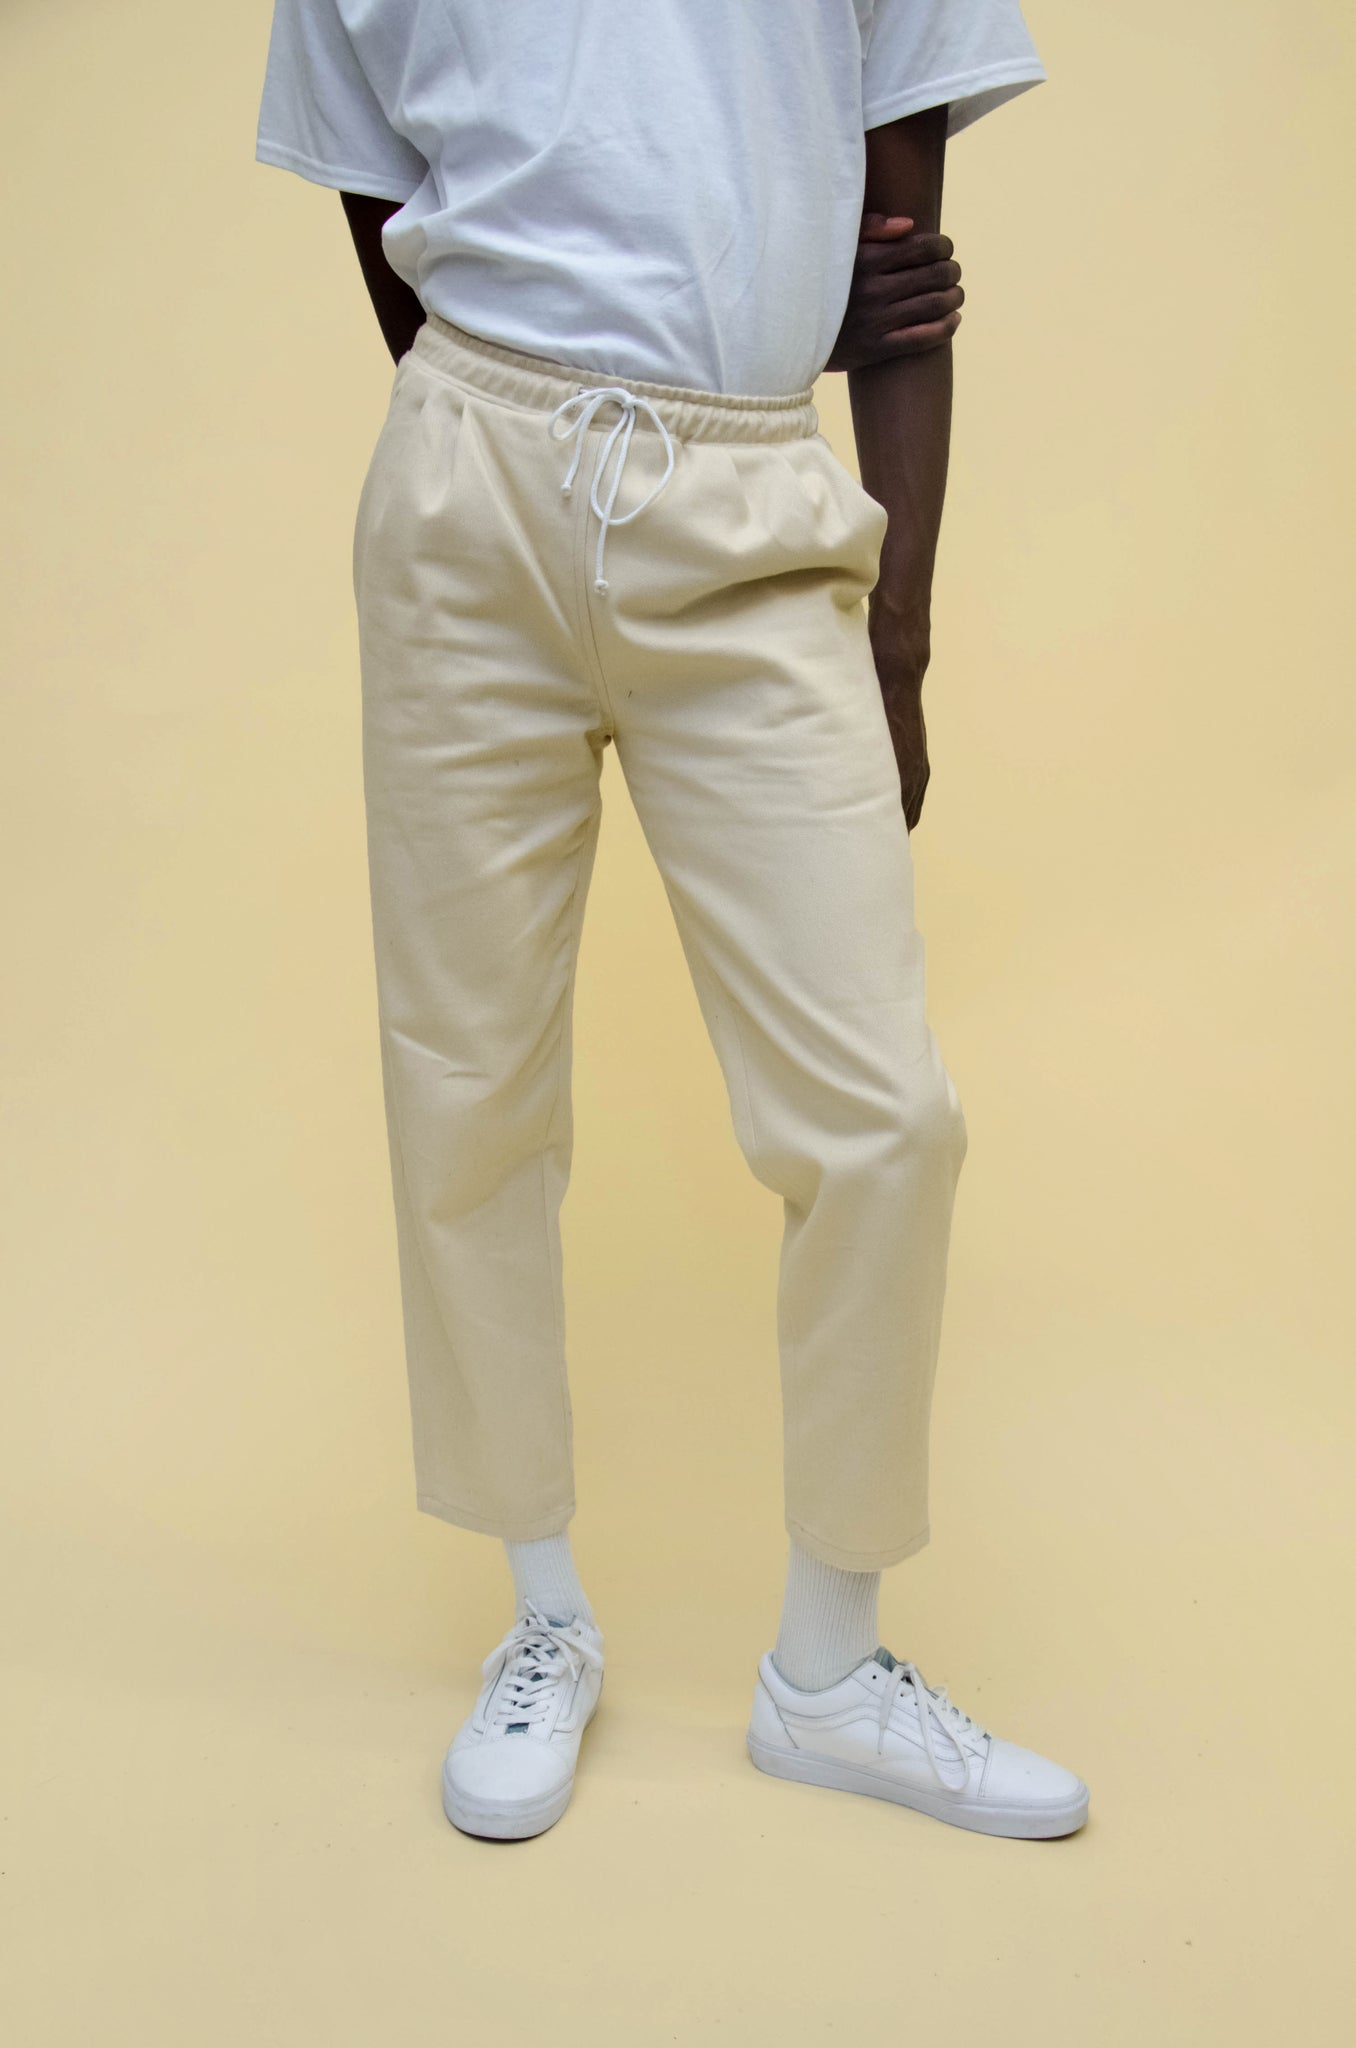 The North Hill Bull Denim Carrot Pants is a made in France pants